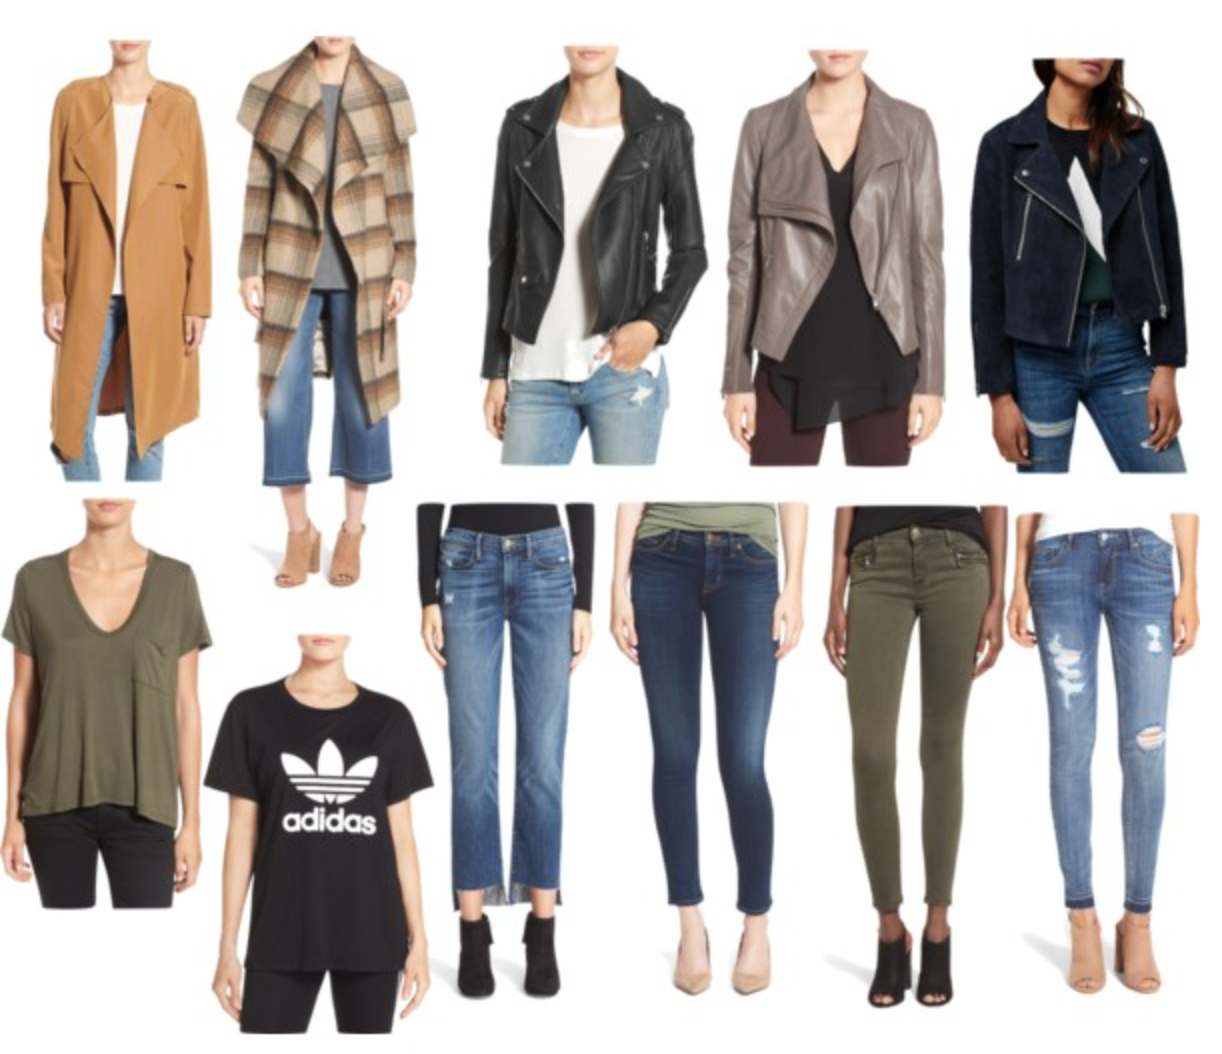 Nordstrom anniversary sale jeans and coat picks